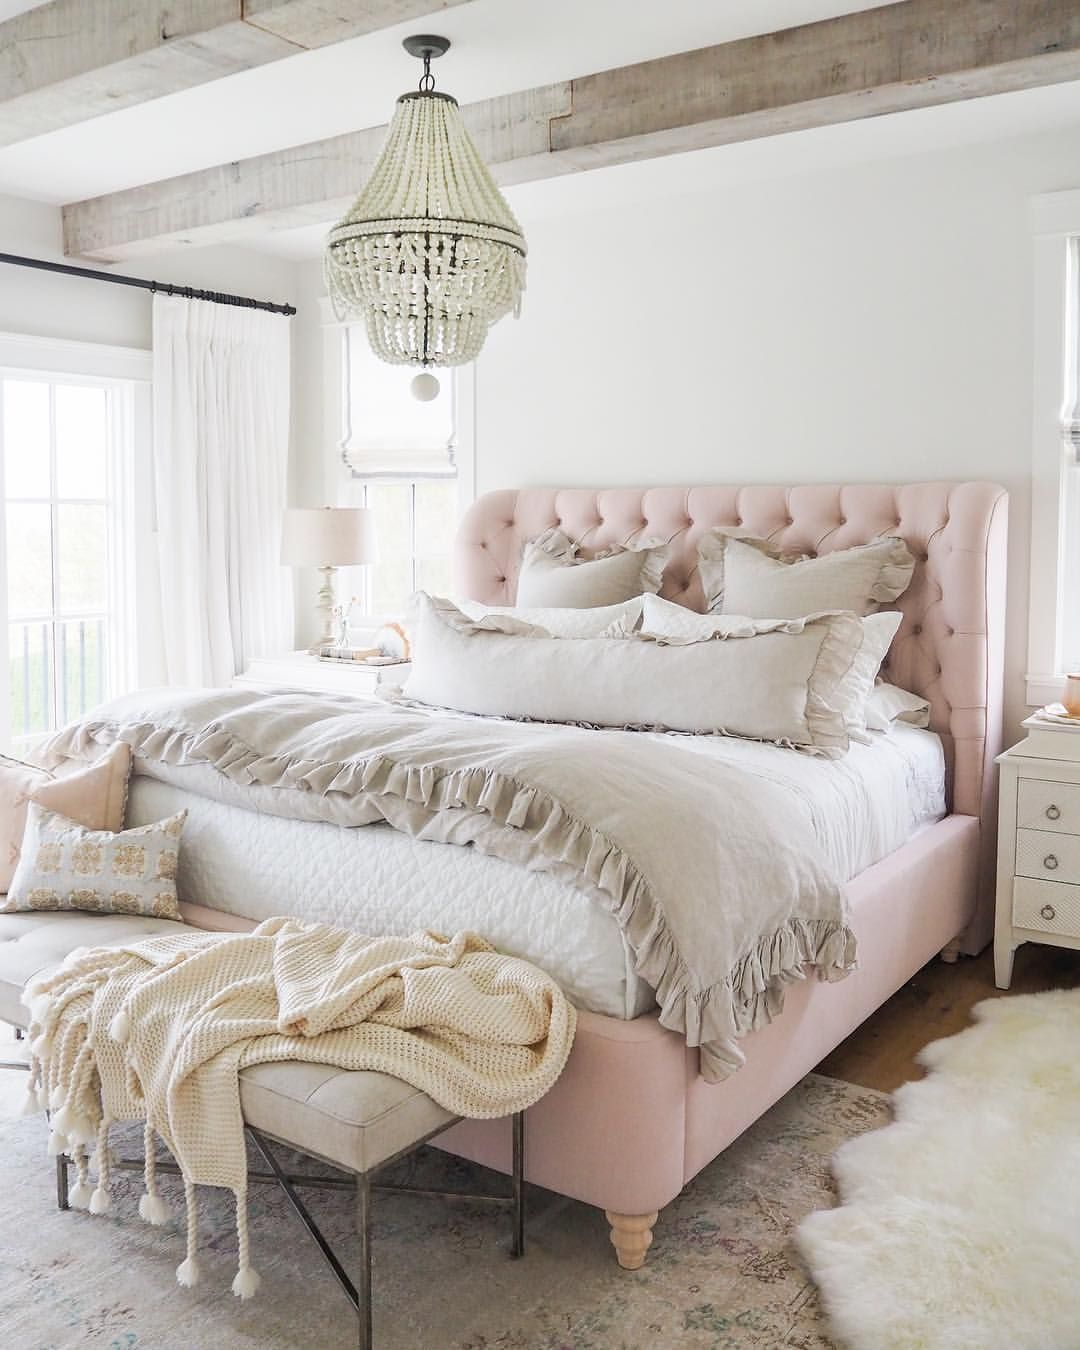 Pin By Emily On Bedroom Decor In 2019 Farmhouse